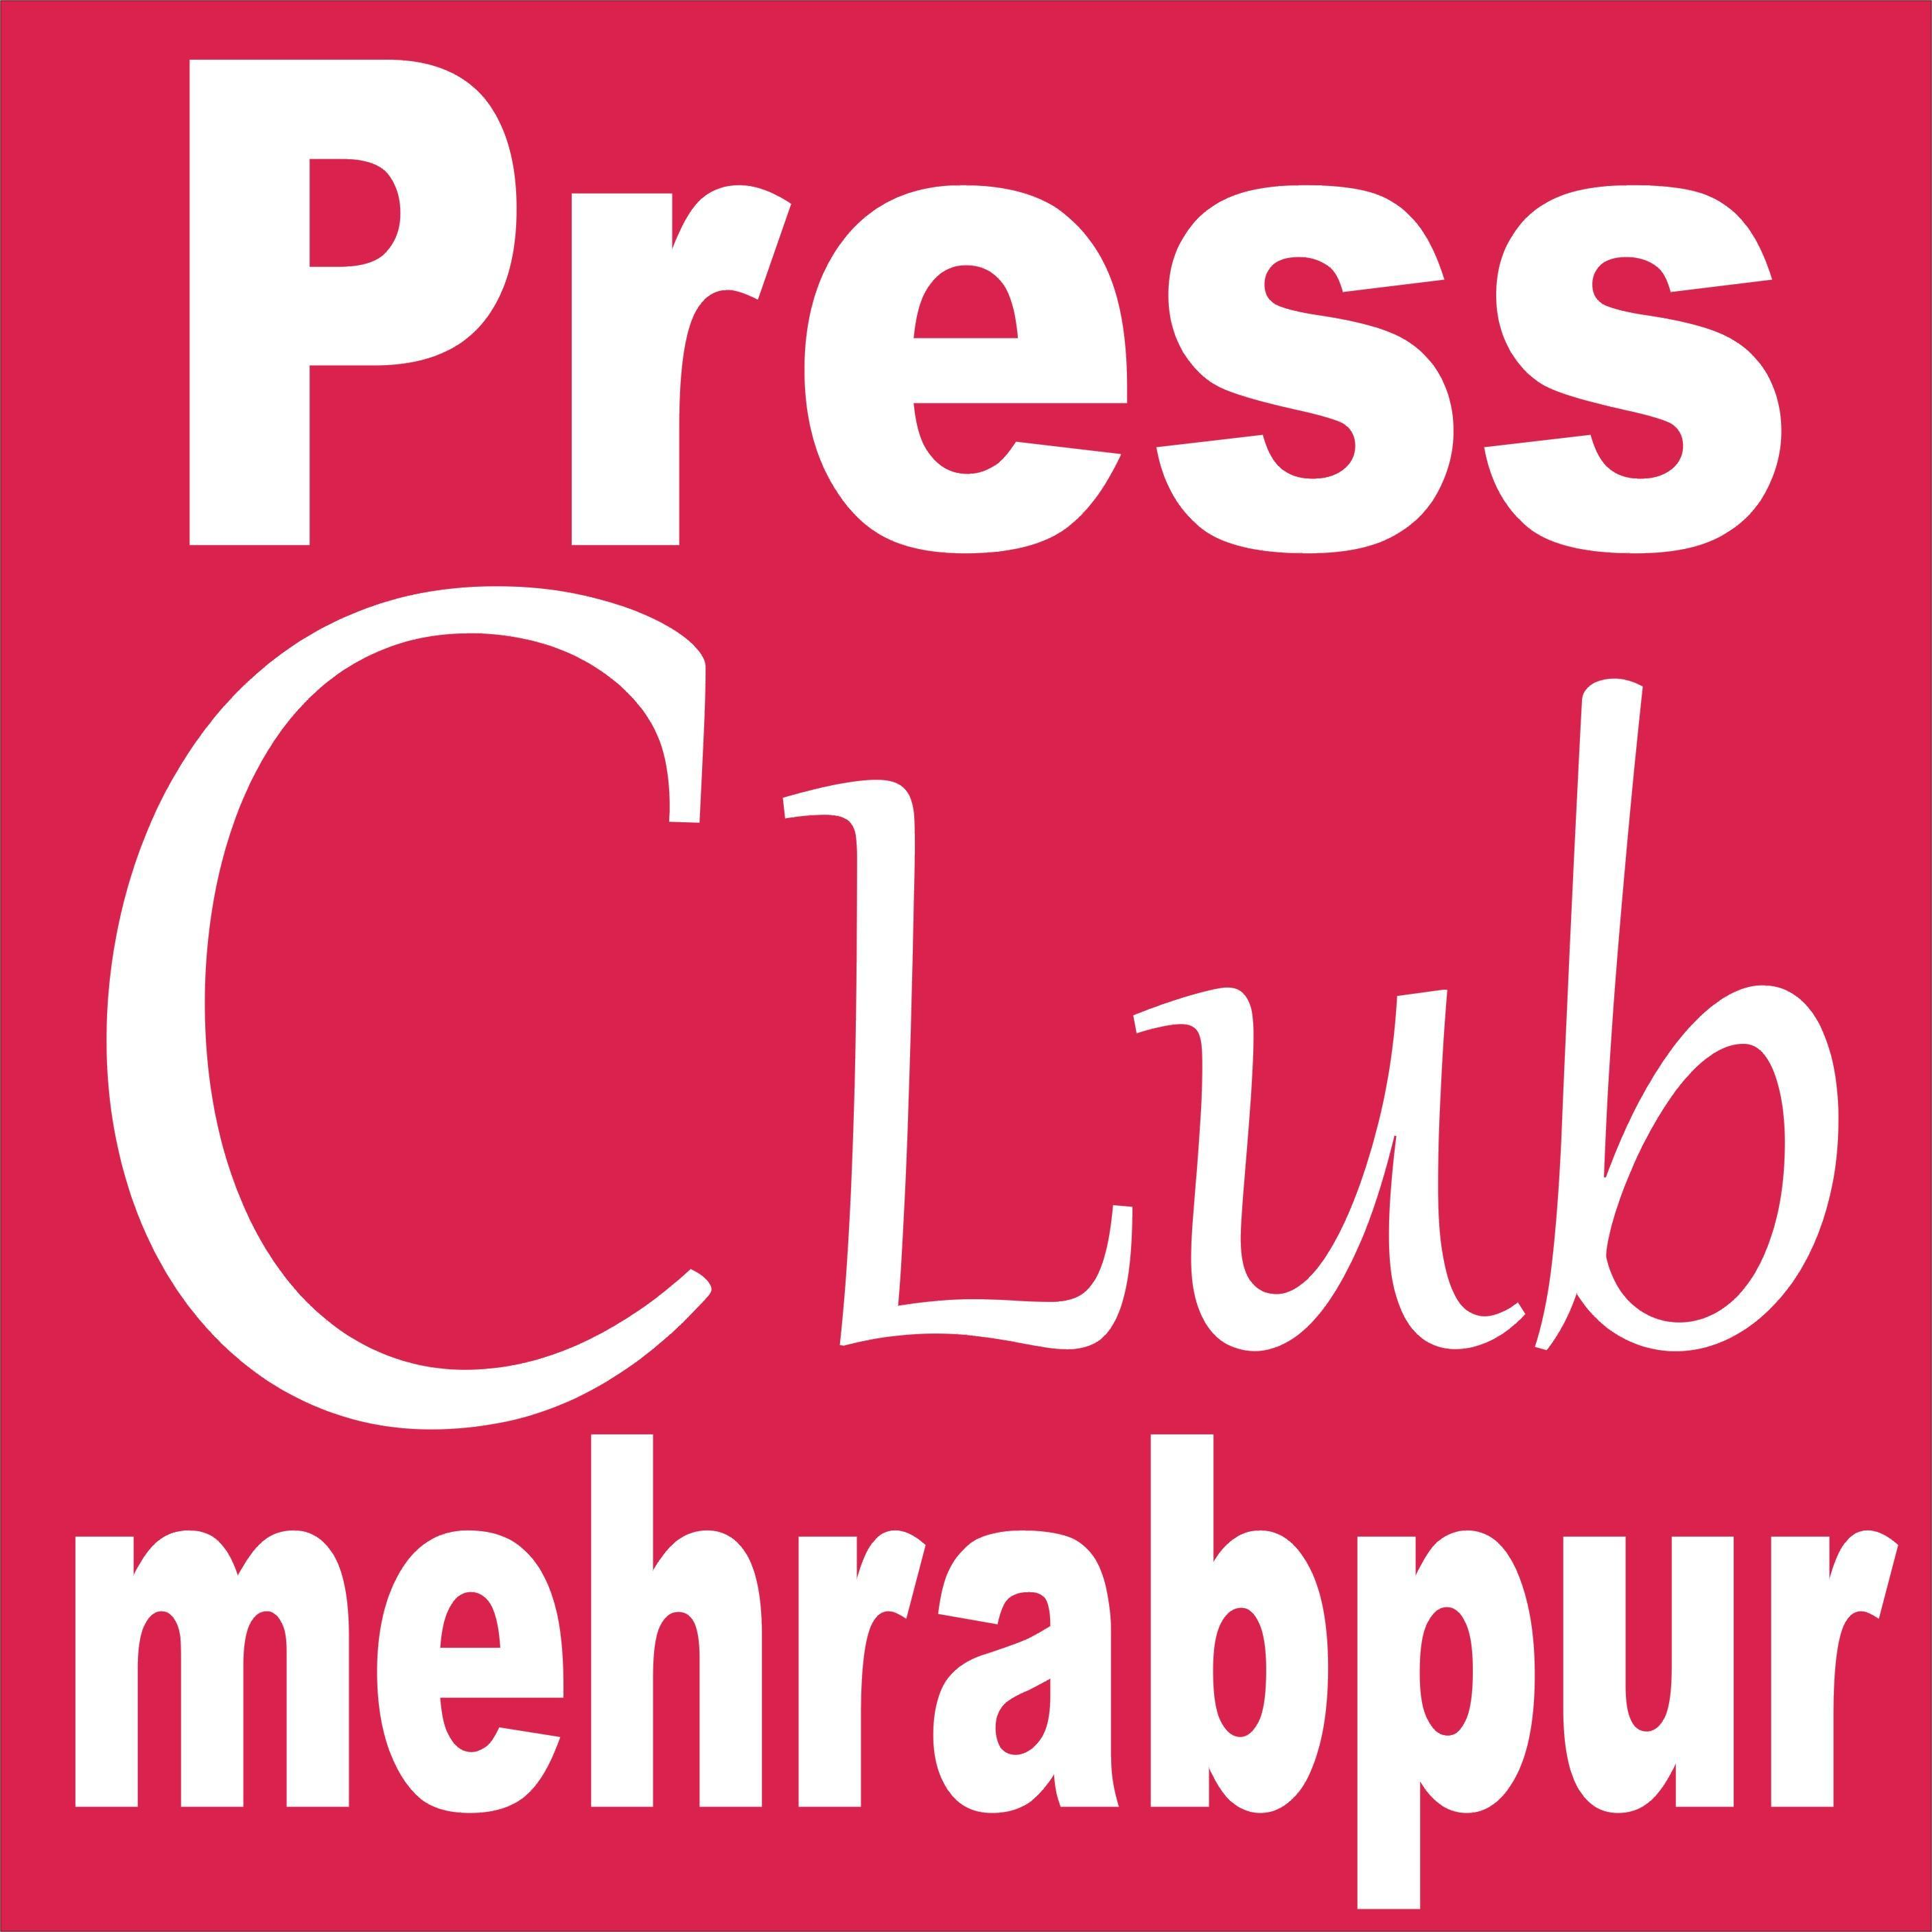 Press Club Mehrabpur